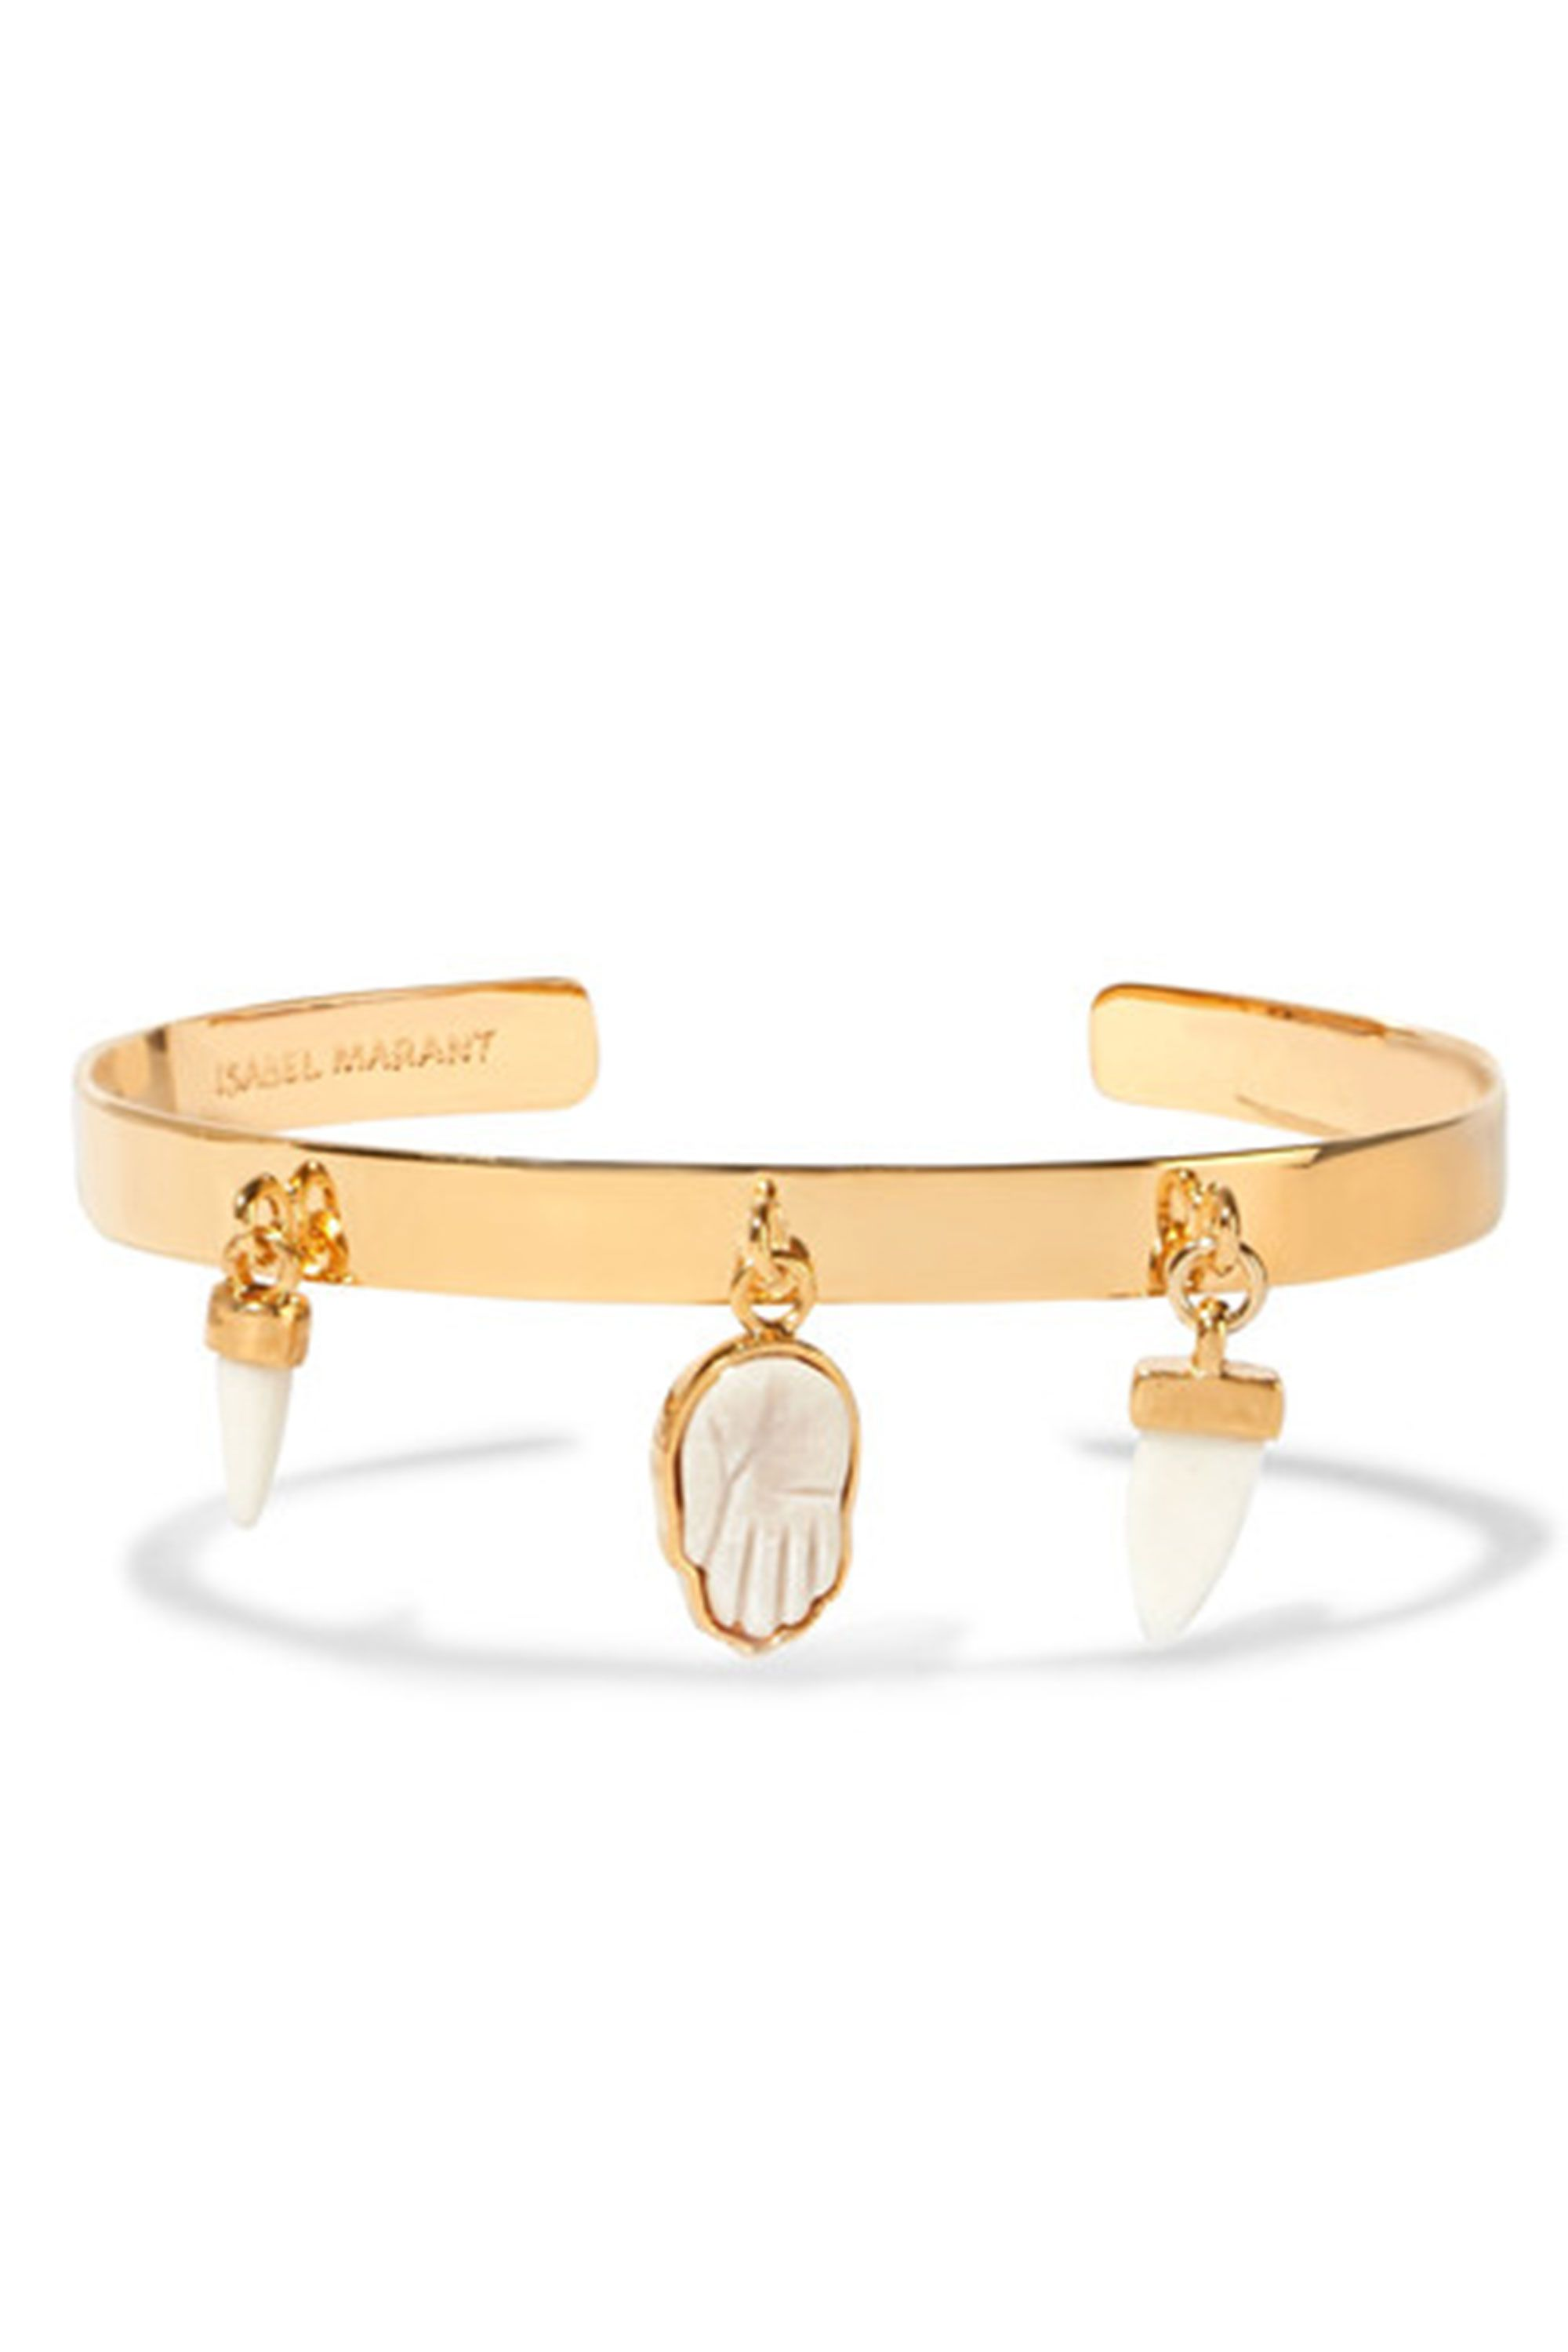 jeweller online ltd diamond gold expensive pc bangles jewellery